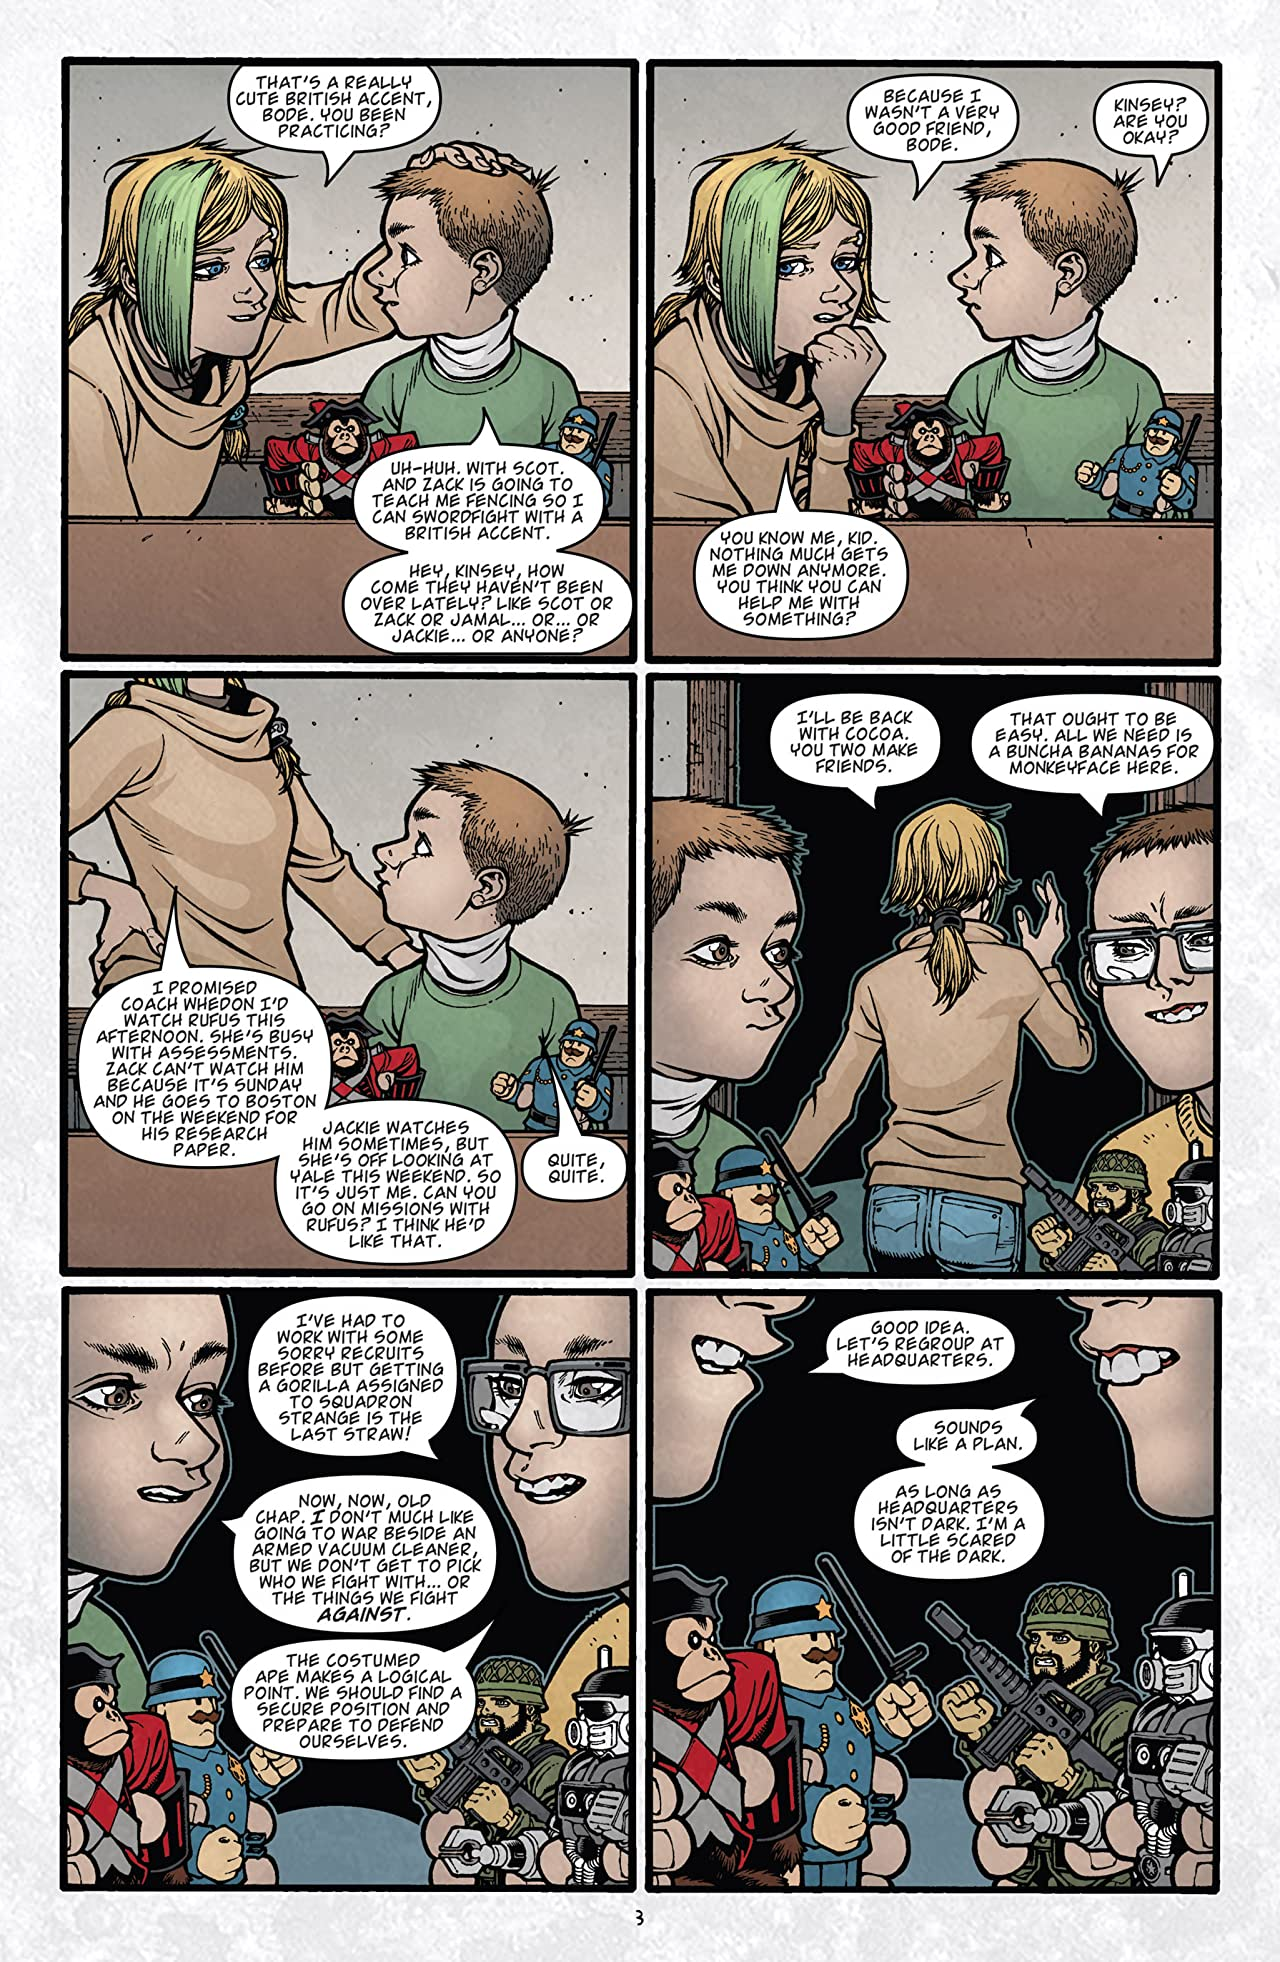 Locke & Key: Keys To the Kingdom #4 (of 6)